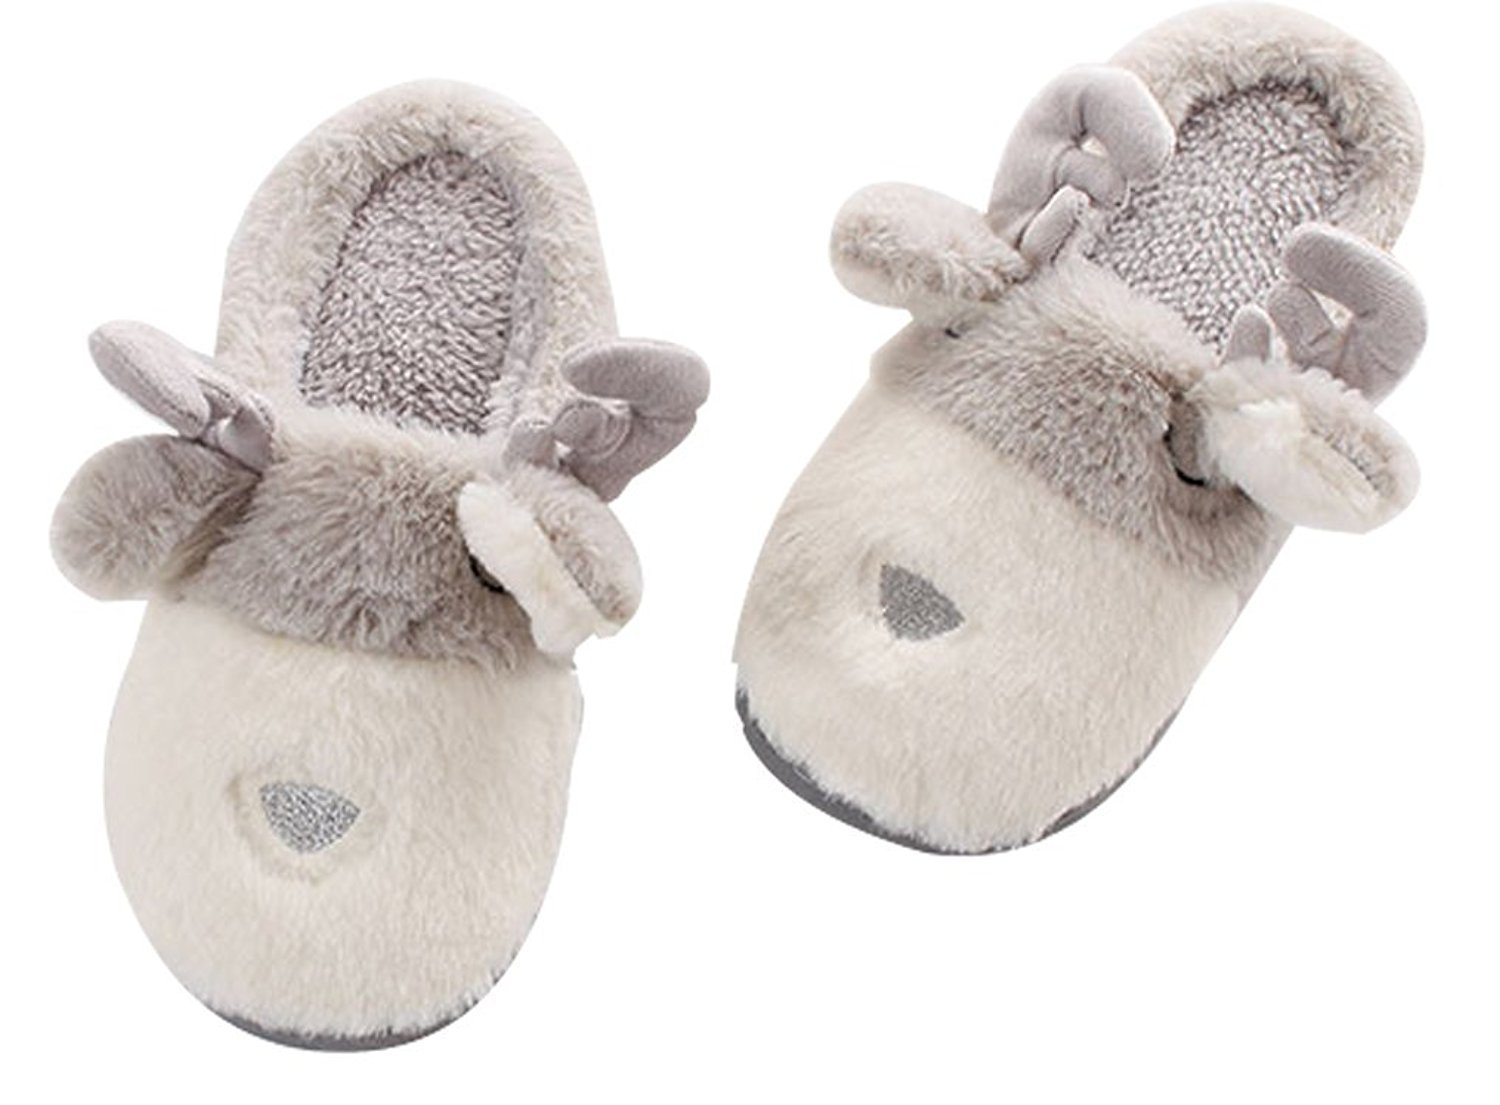 e633f3af892 Get Quotations · C wait Animal Indoor Fluffy Slippers Fuzzy Slippers Womens  Slippers